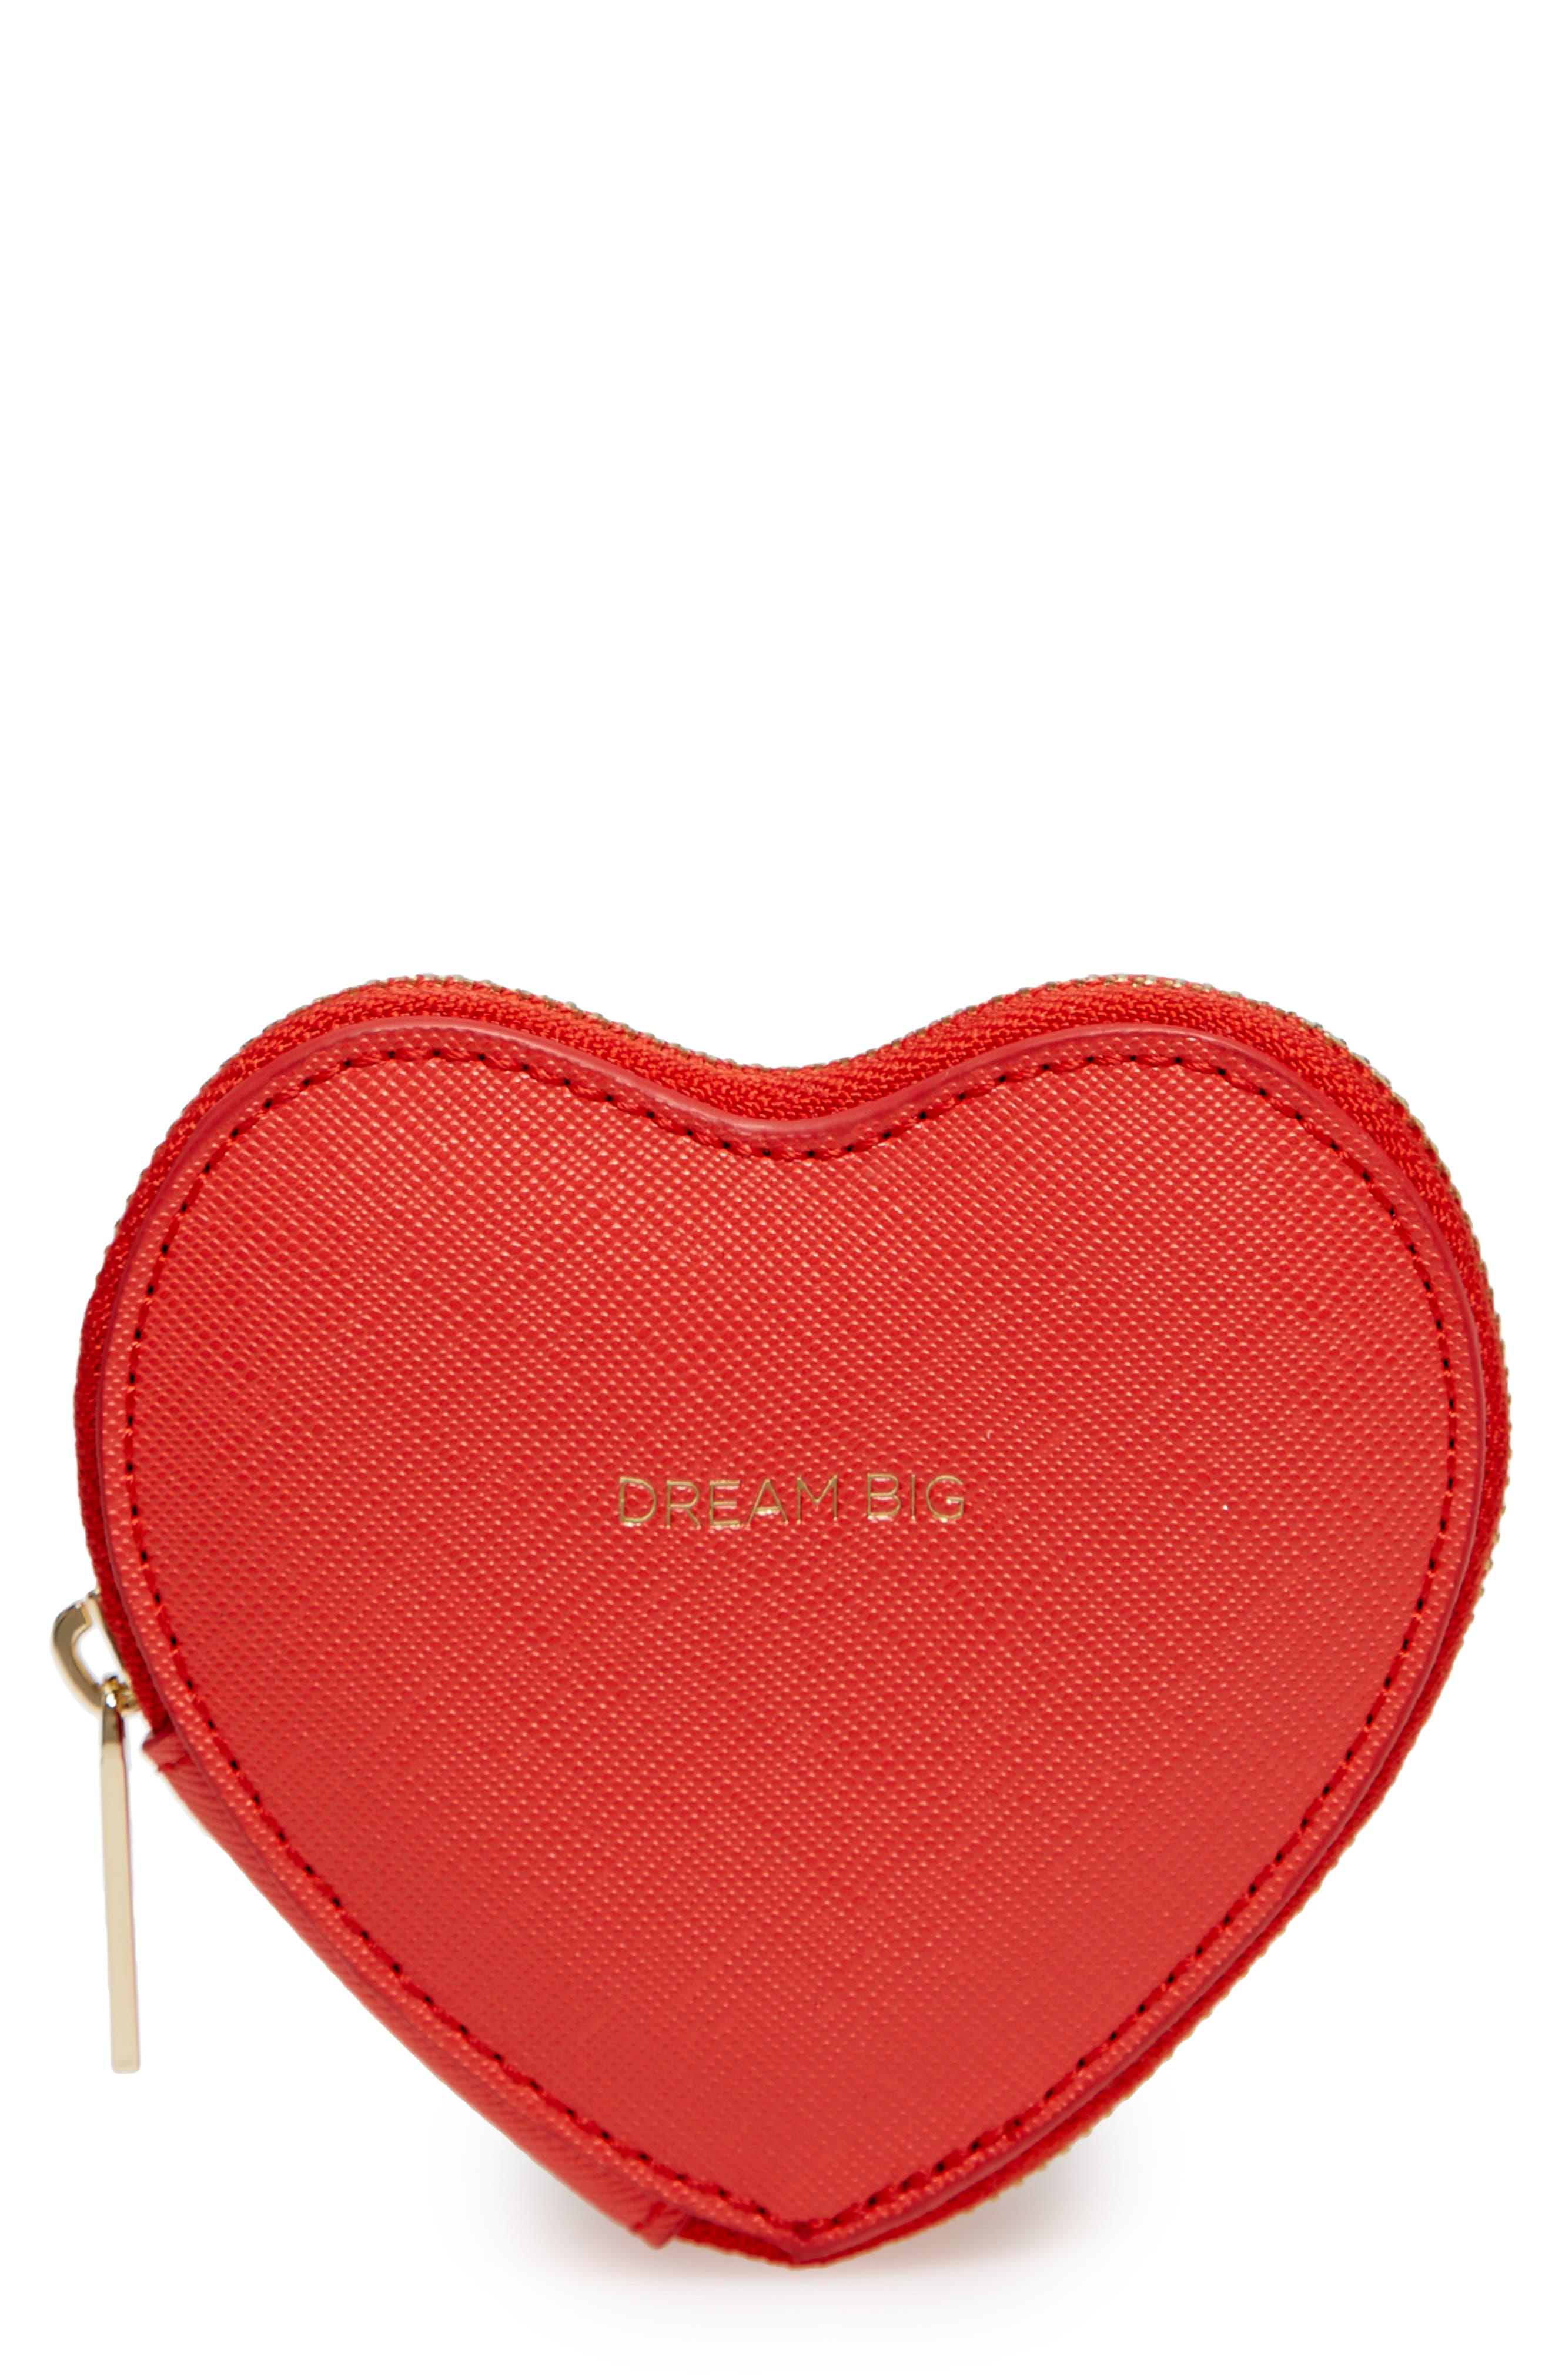 Dream Big Heart Faux Leather Coin Purse,                         Main,                         color,